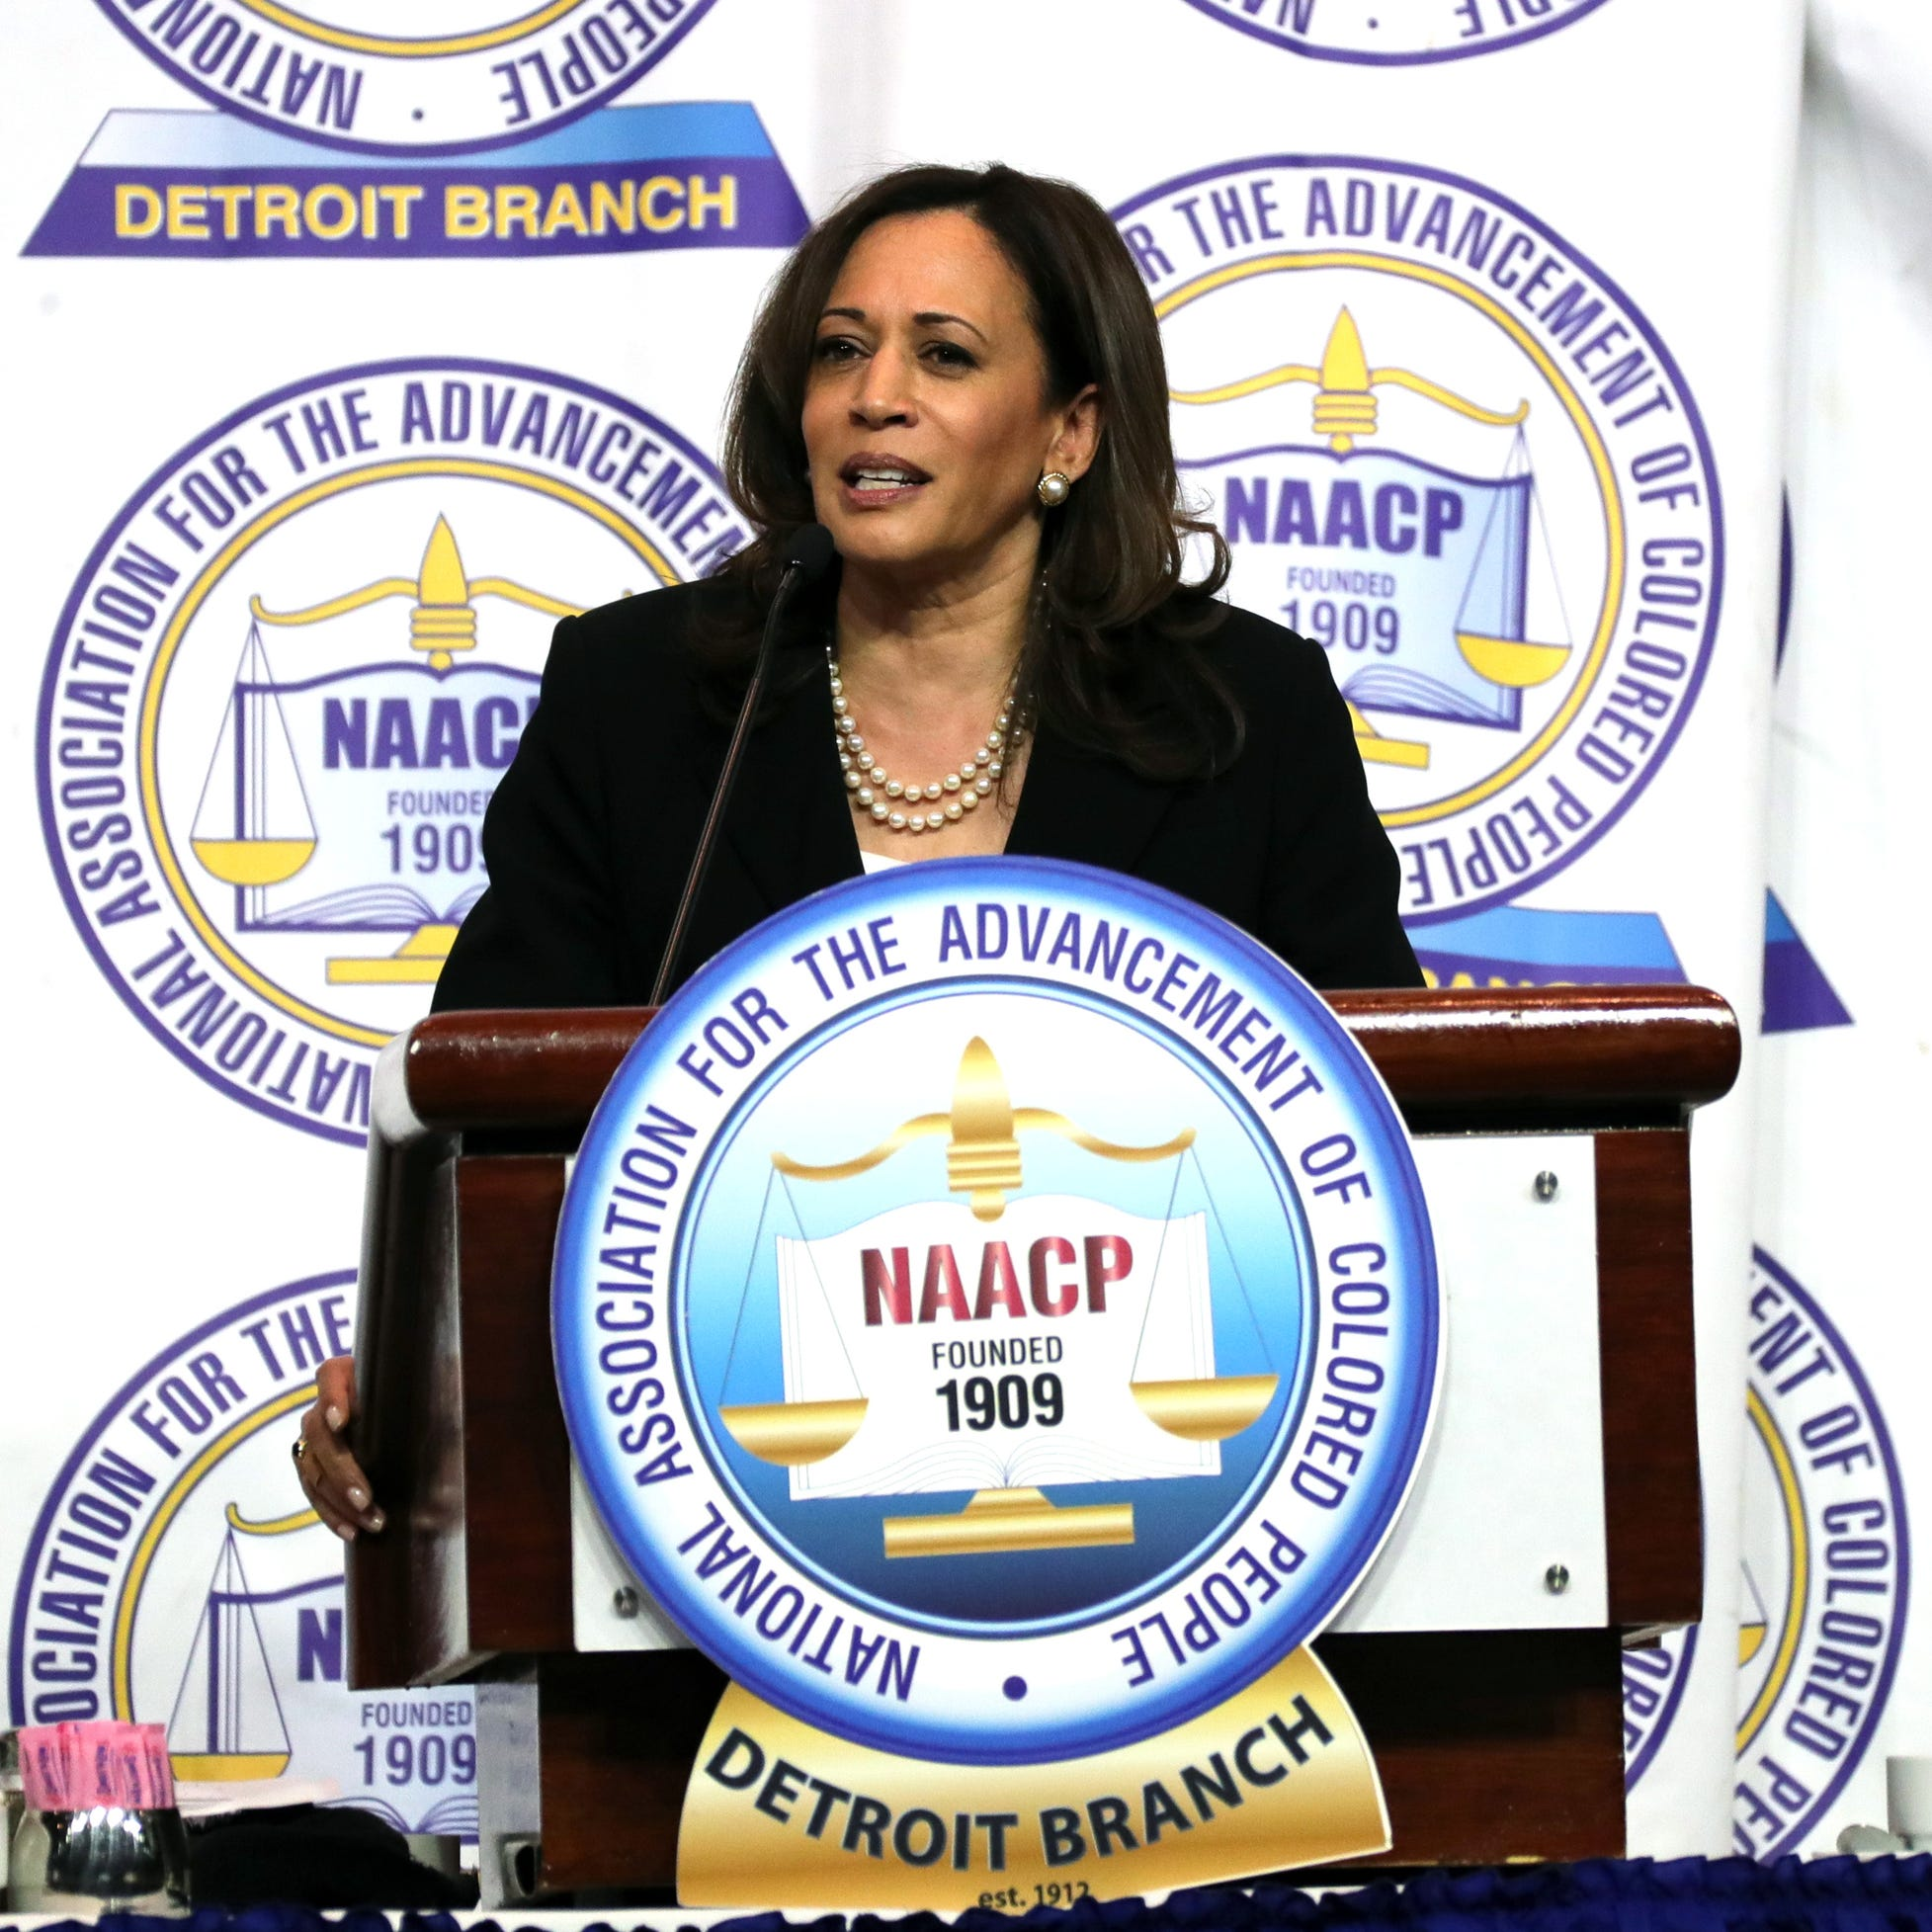 Kamala Harris takes on President Trump in Detroit speech to NAACP